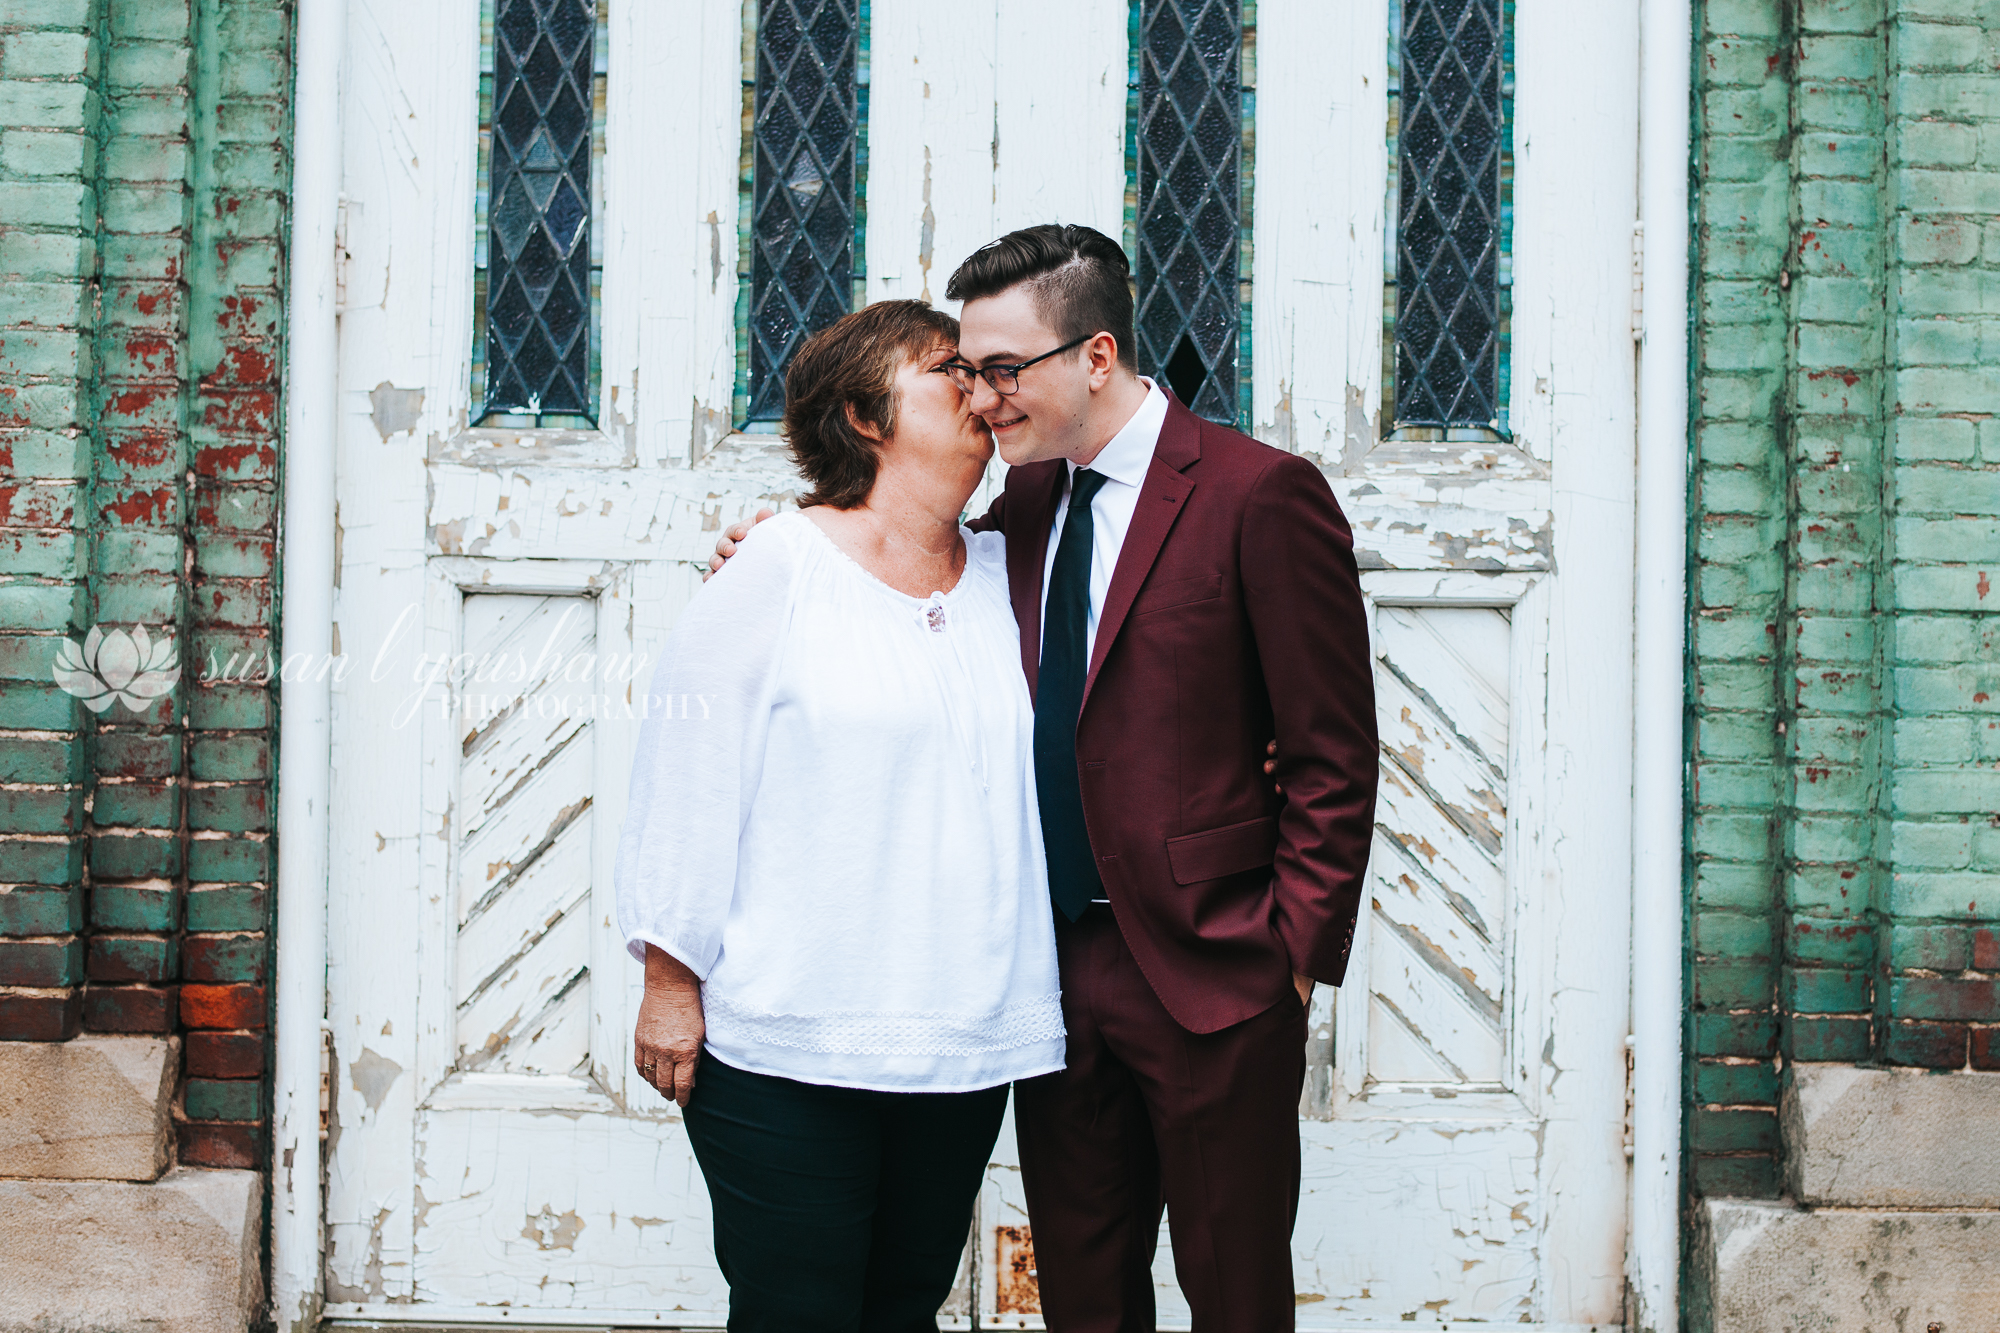 Chynna and John Wedding 05-18-2019 SLY Photography-46.jpg